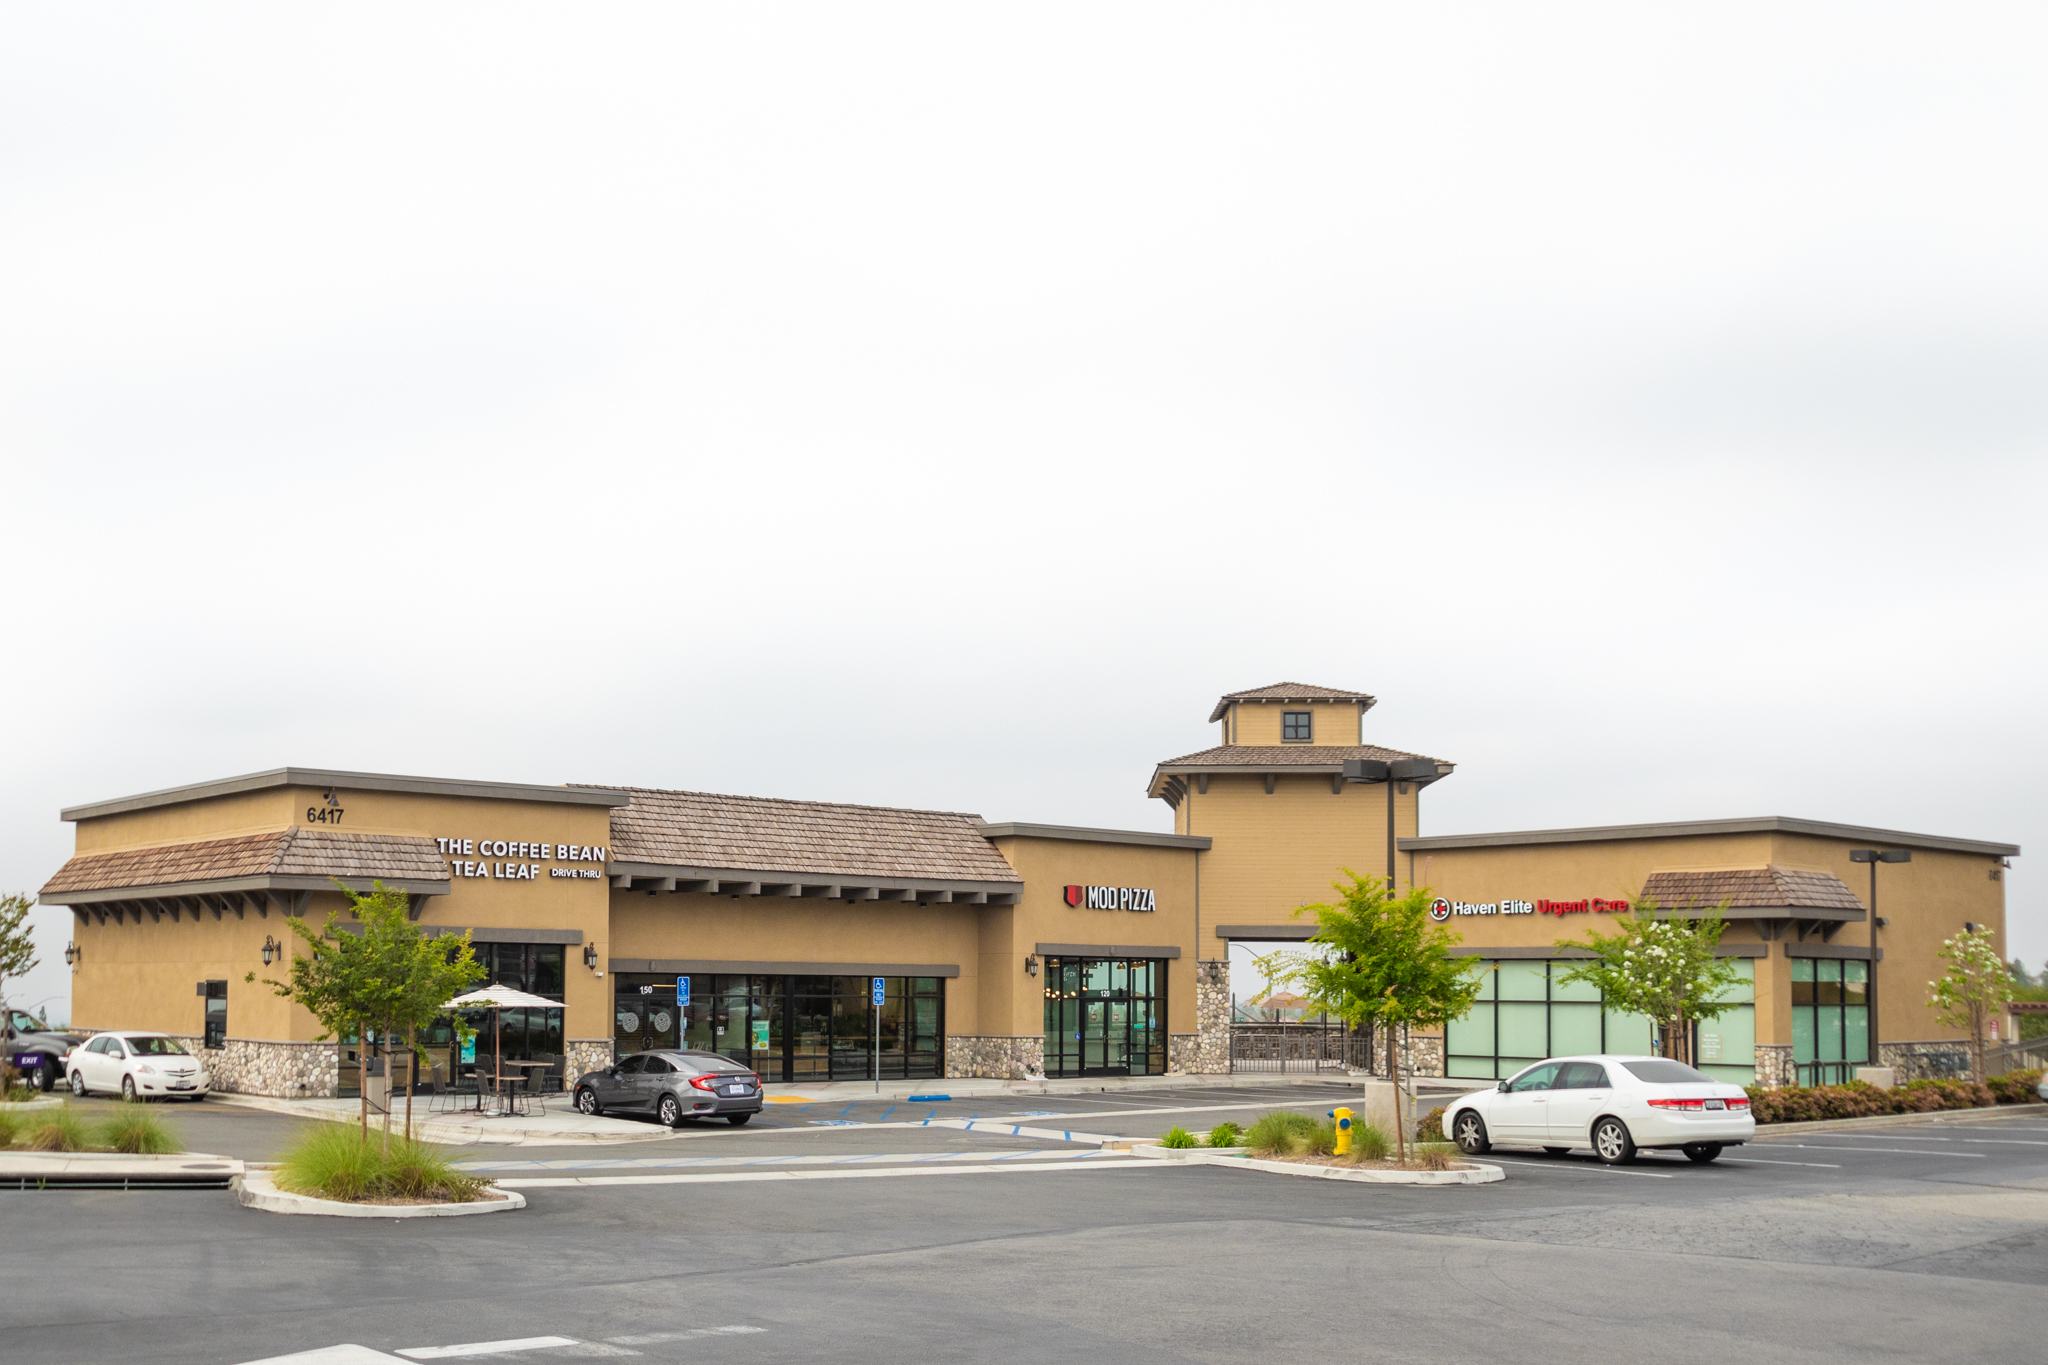 haven elite urgent care in rancho cucamonga